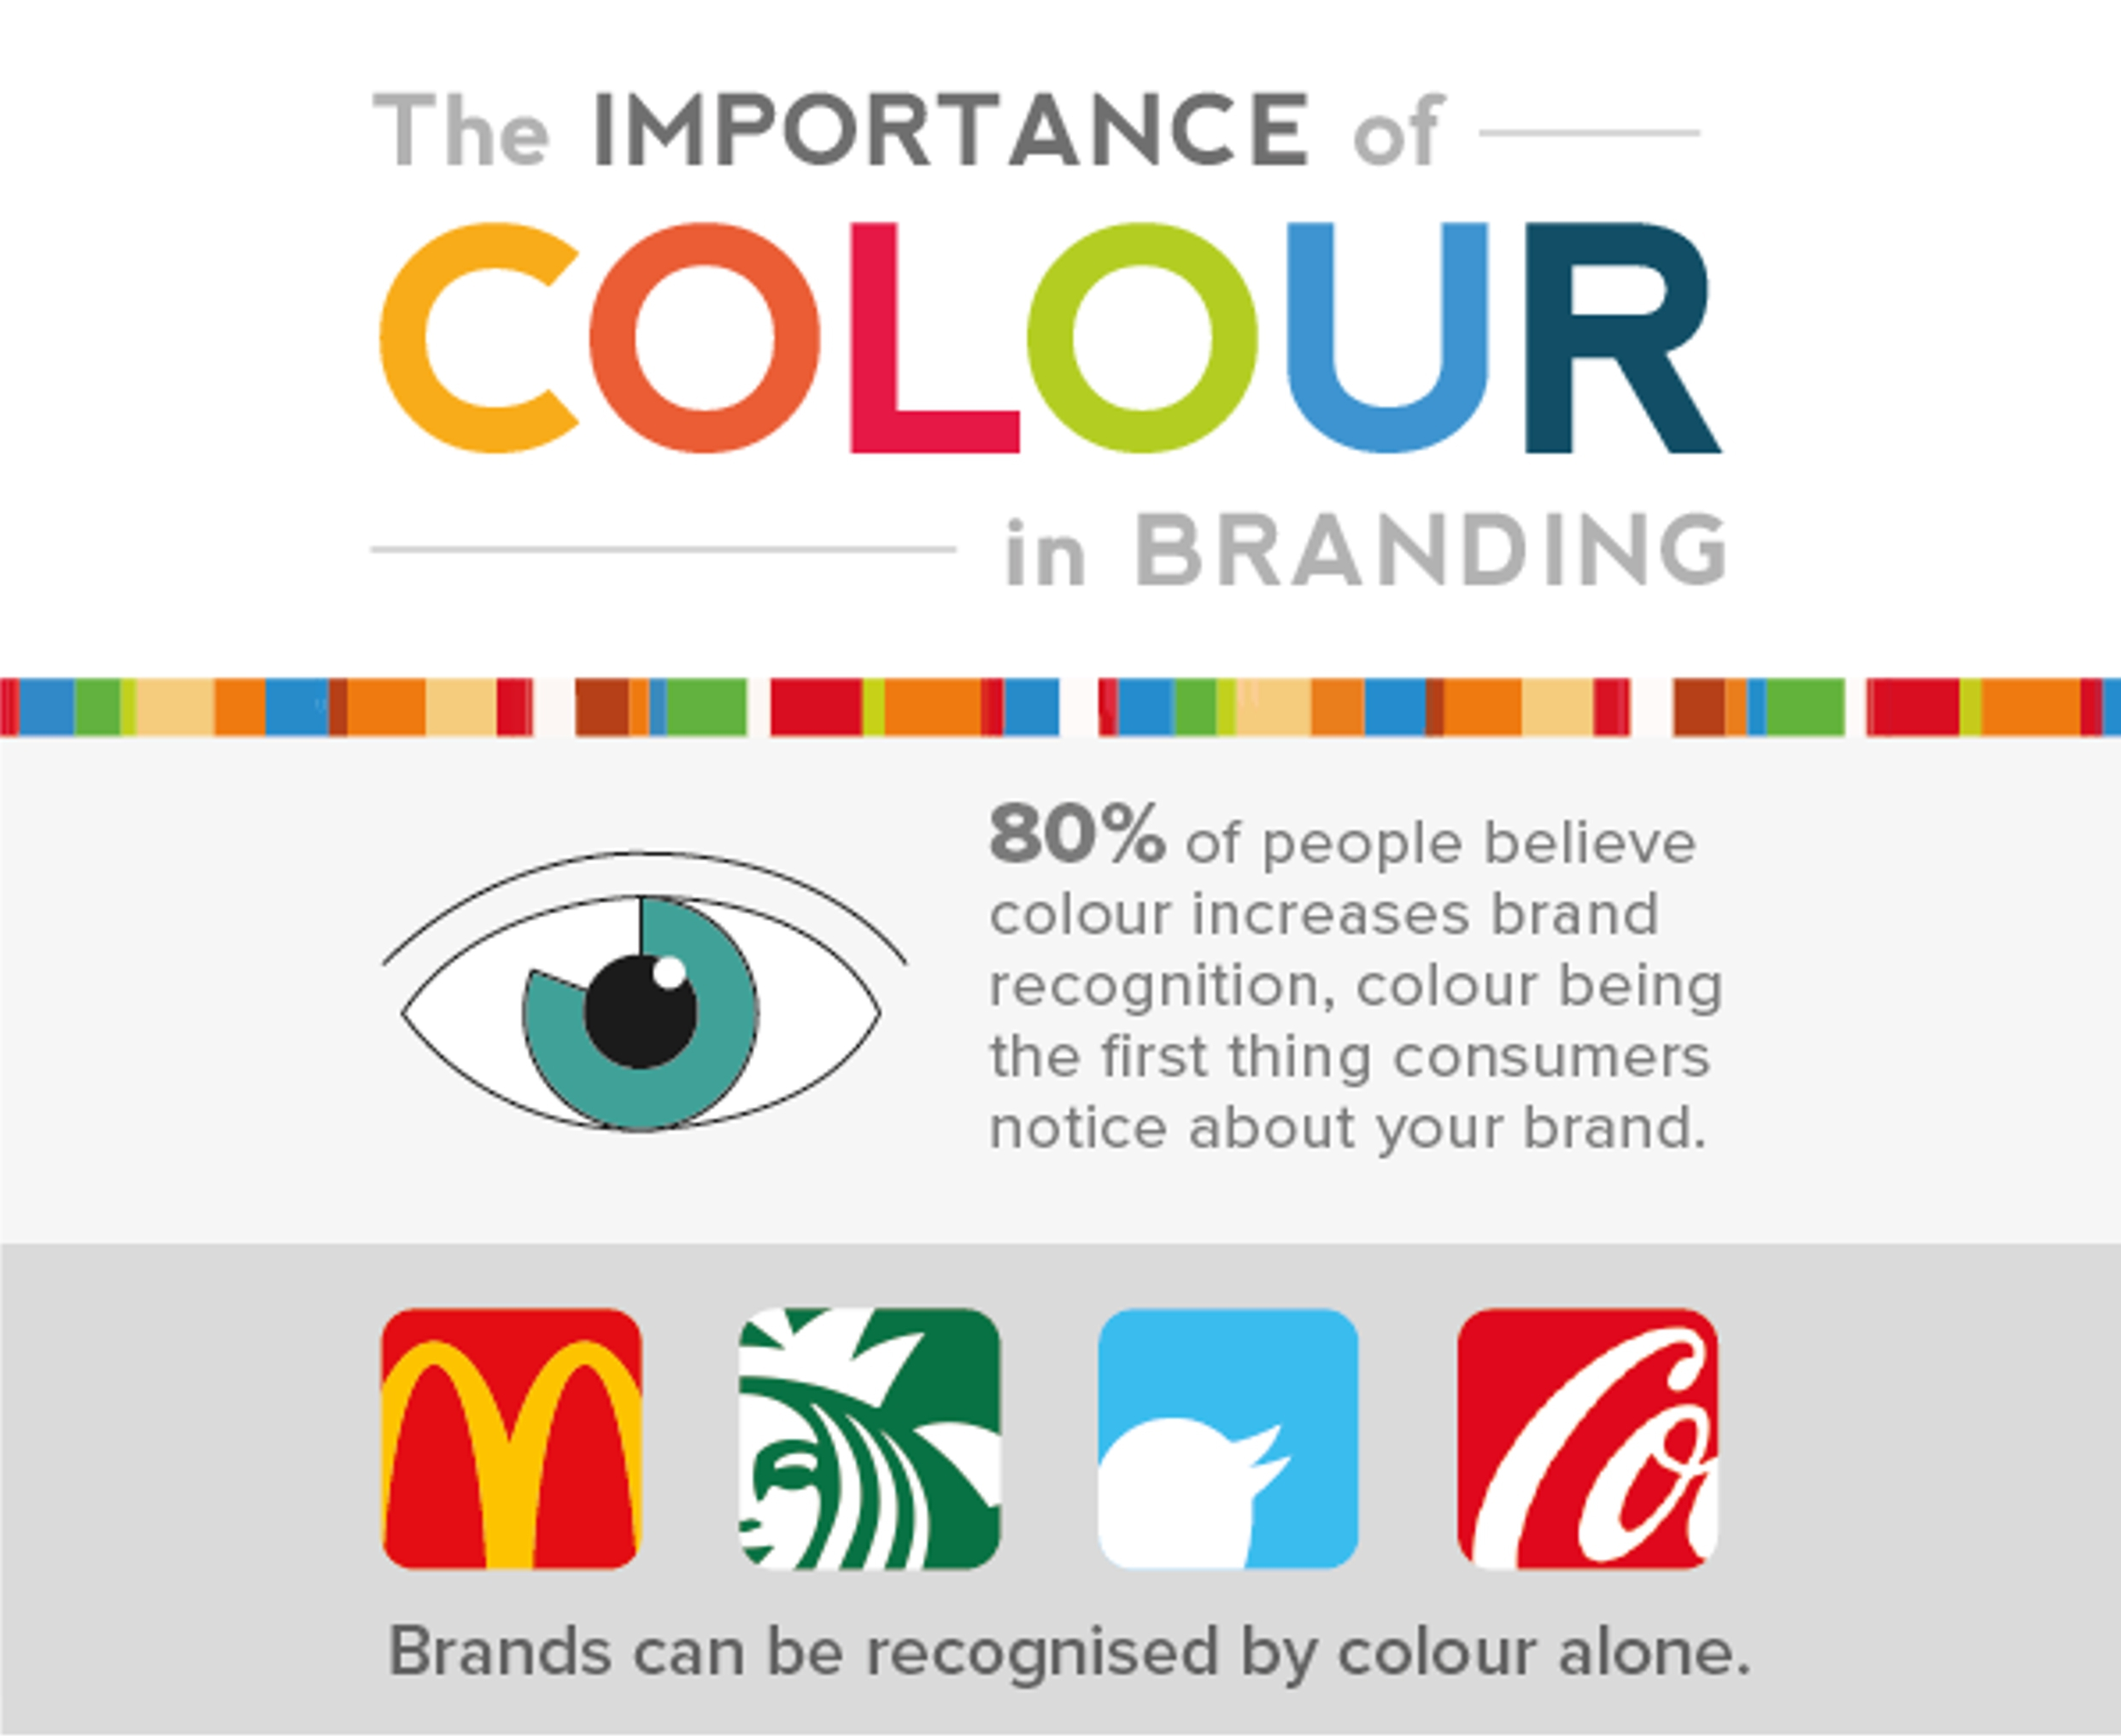 The importance of colour in marketing